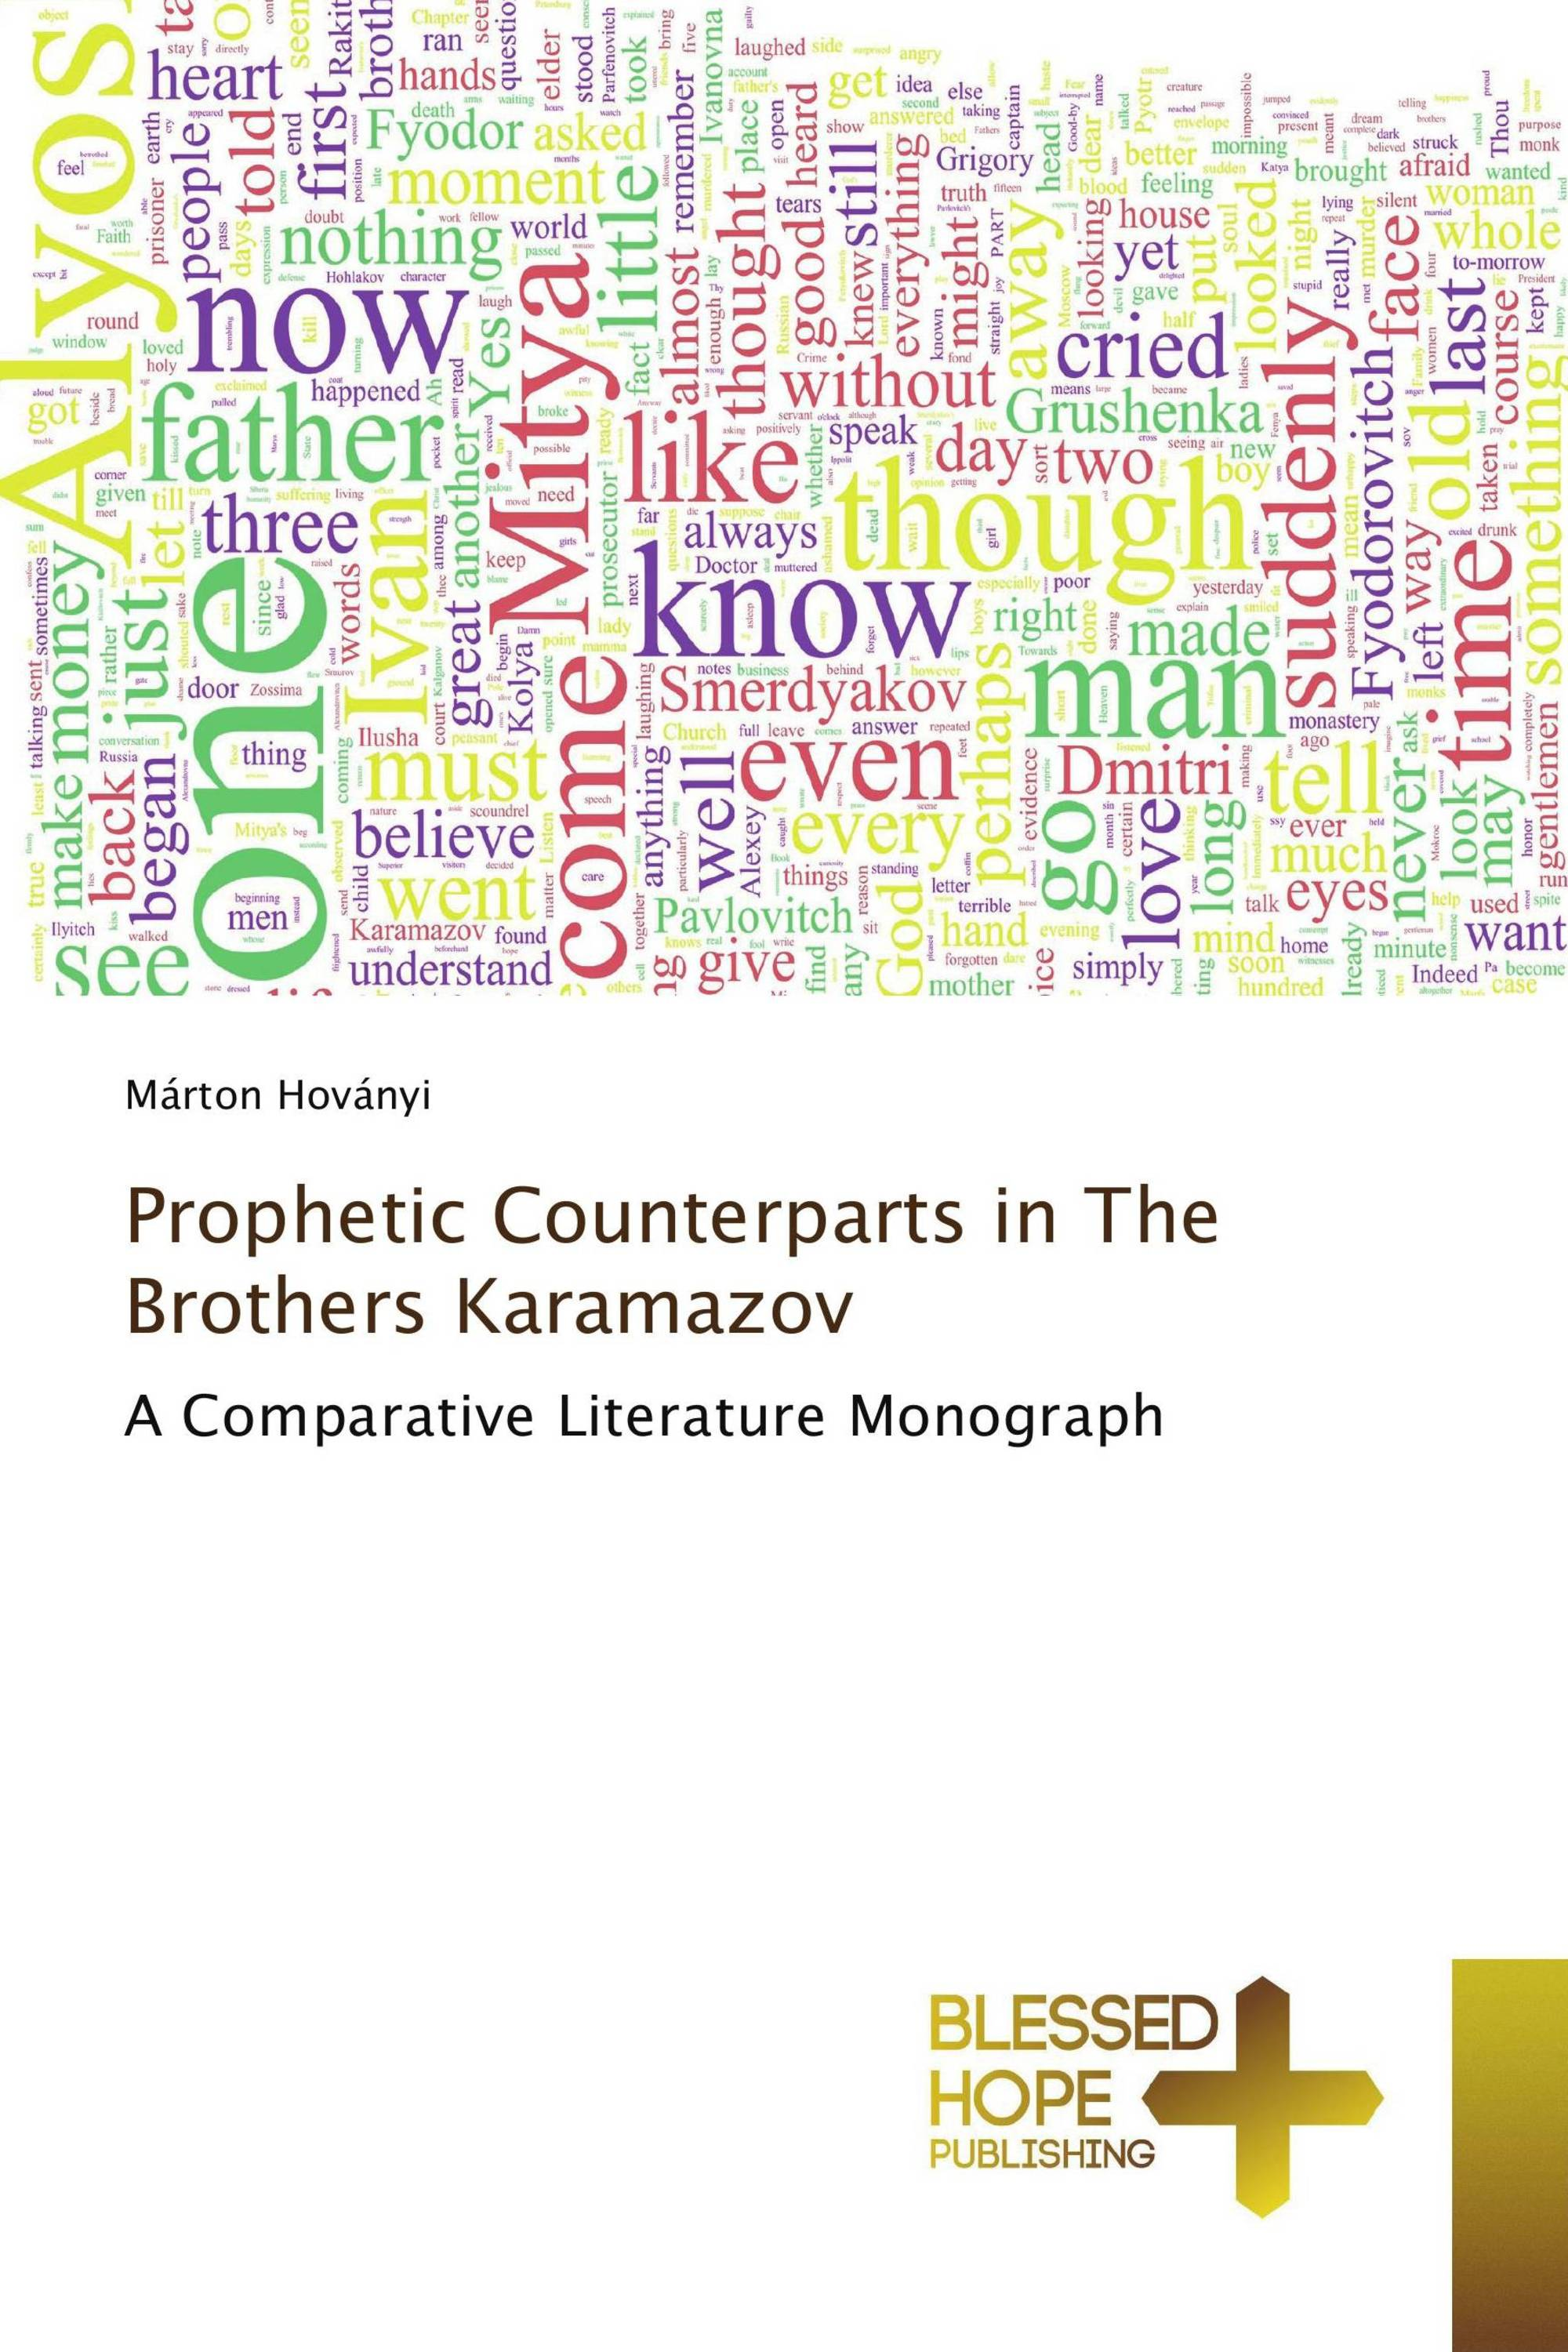 Prophetic Counterparts in The Brothers Karamazov